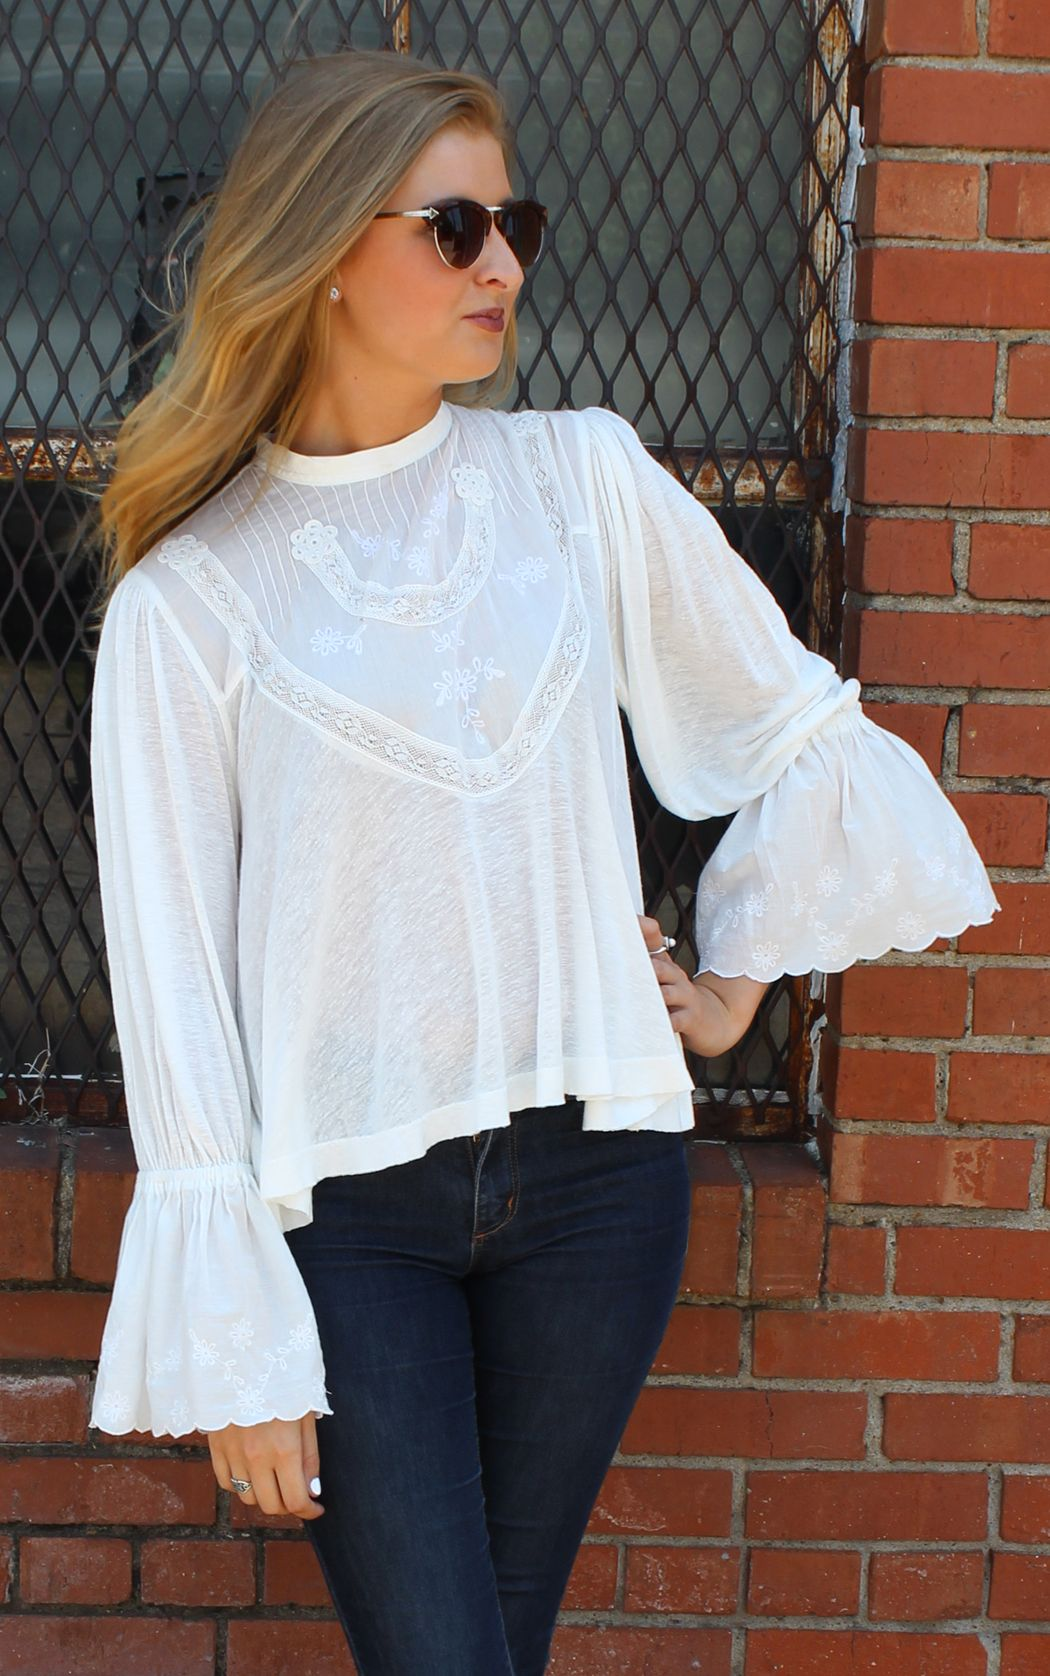 f84ad1531a3116 Femme Fatale Top by Free People White, lace detailing, flared at bottom of  sleeves, buttoned in back with a split very small high low hem.